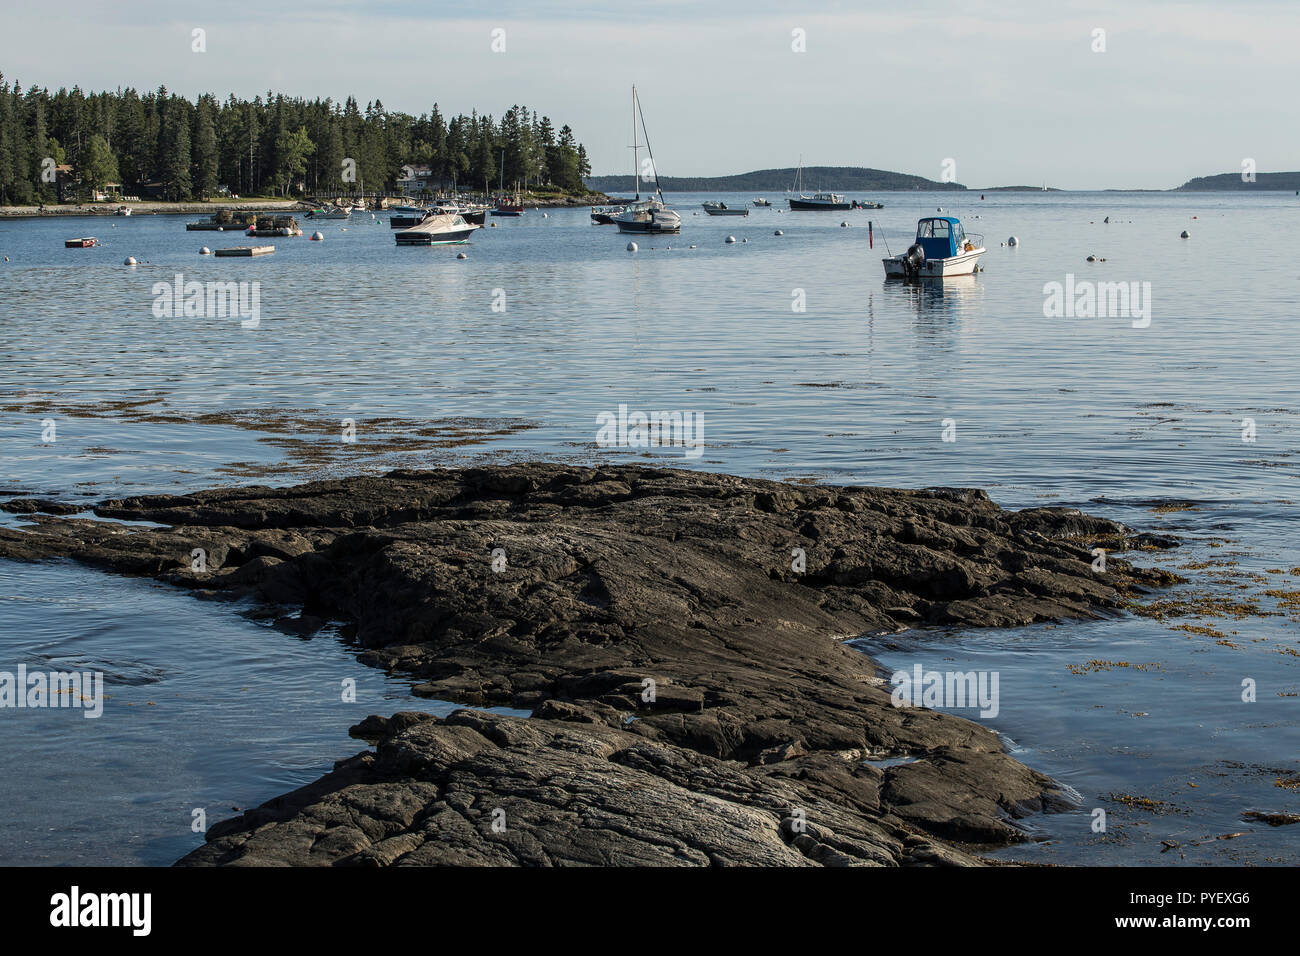 View of Tenant's Harbor, from downtown Tenant's Harbor, Maine. Ideal vacation spot for tourists. Beautiful rocky Maine coastline with fishing boats. - Stock Image